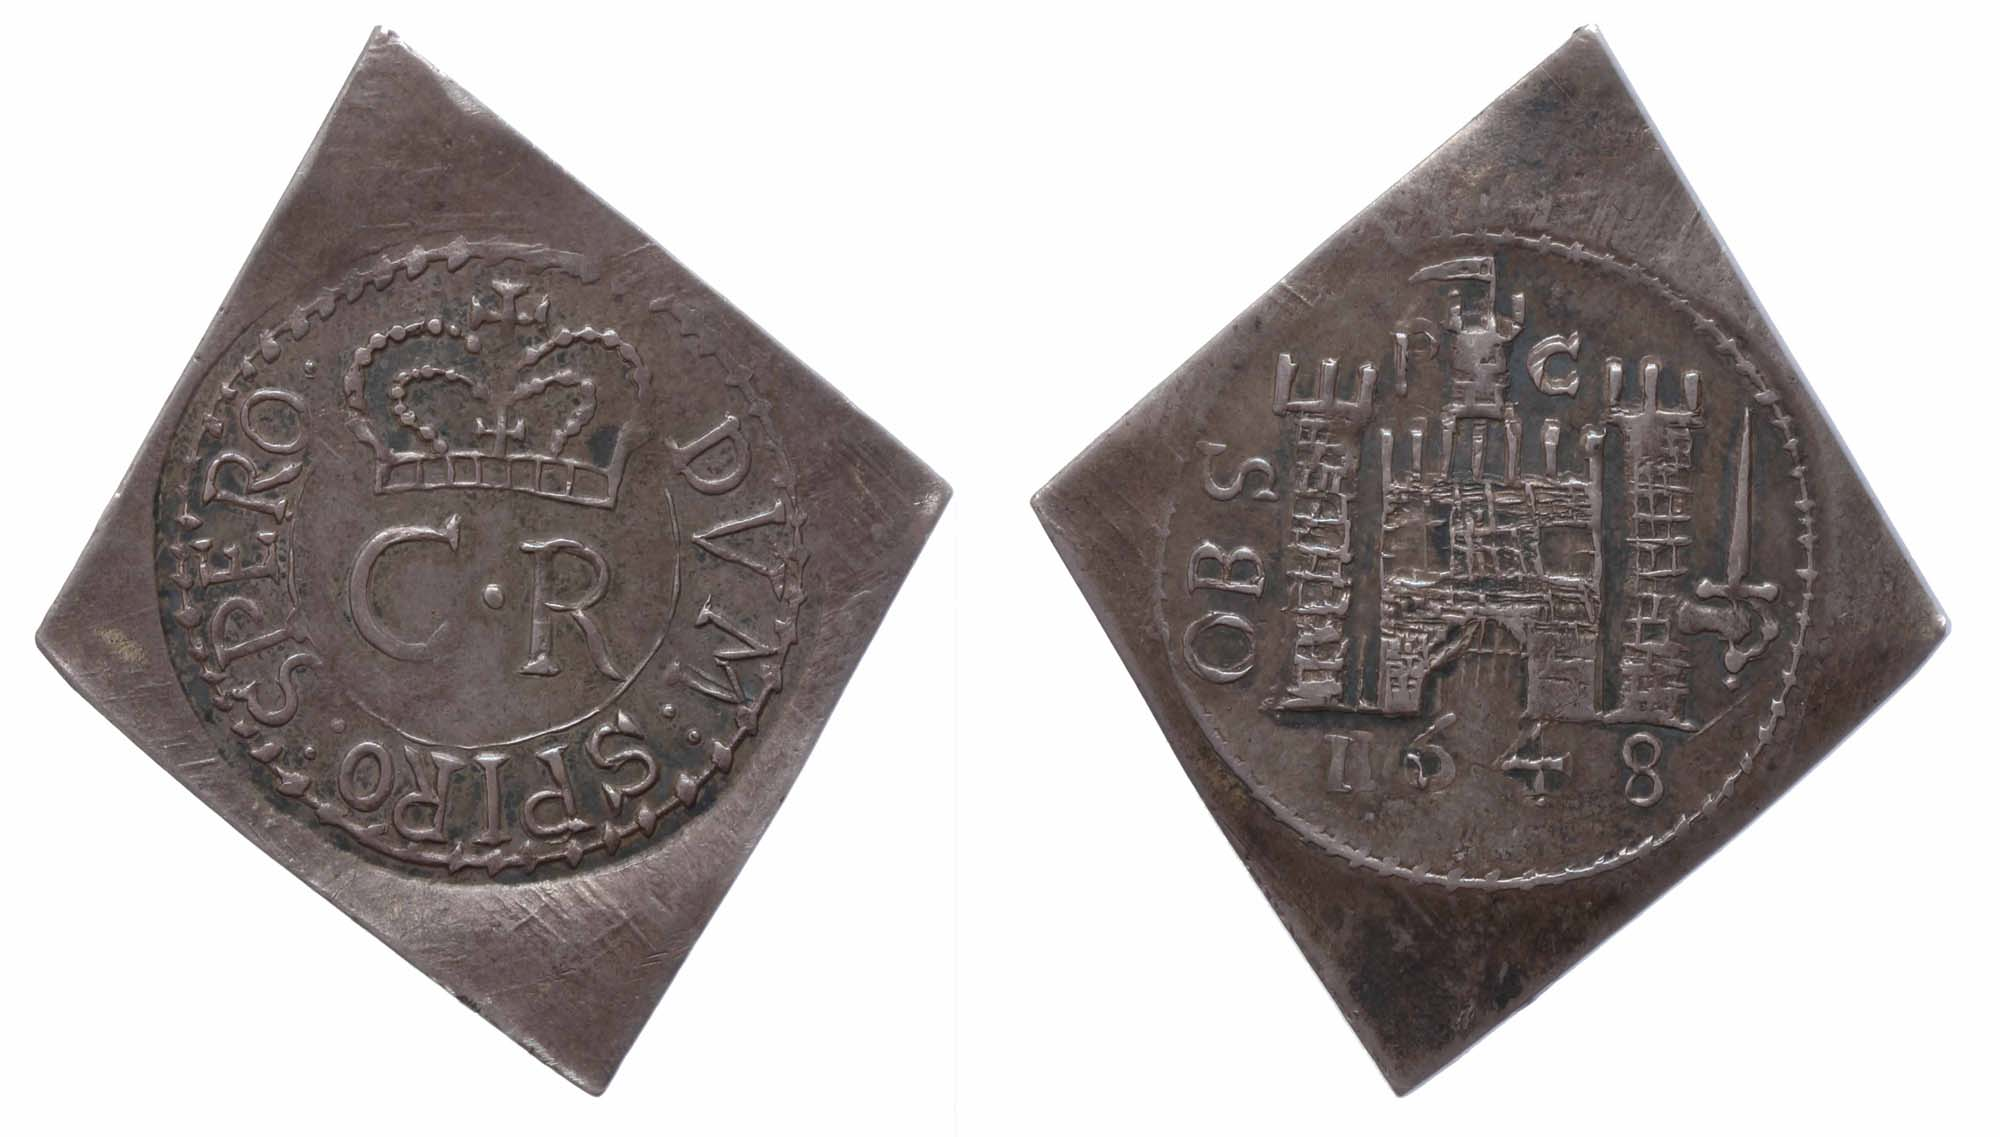 a roughly cast lozenge shaped coin with a castle image and royal cipher